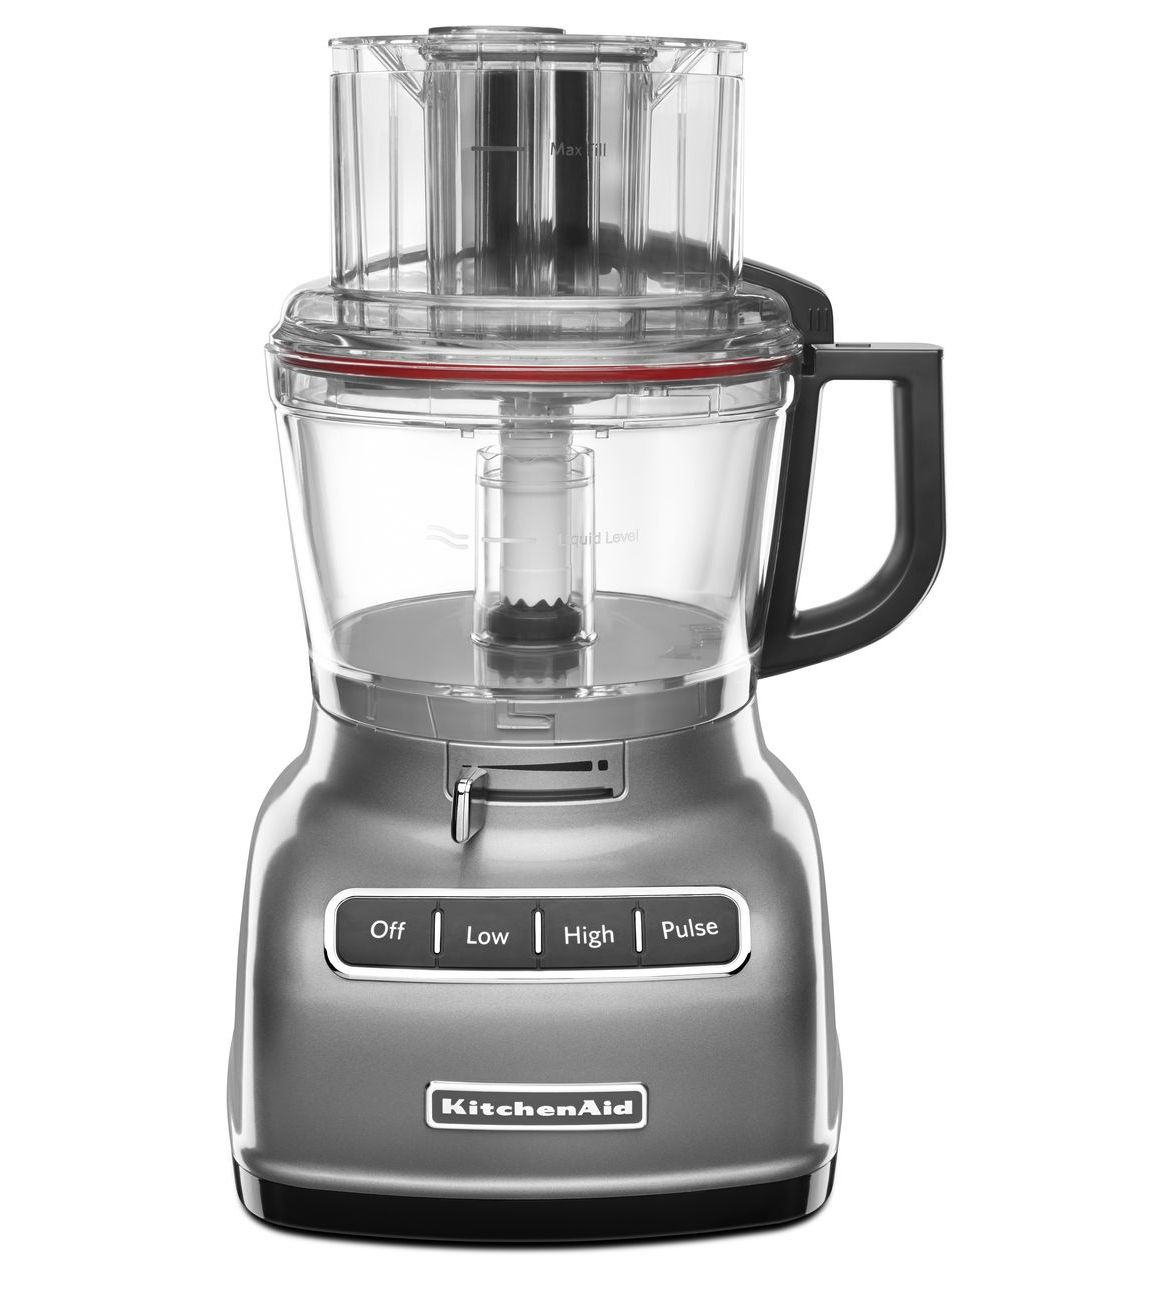 Charmant KitchenAid® 9 Cup Food Processor